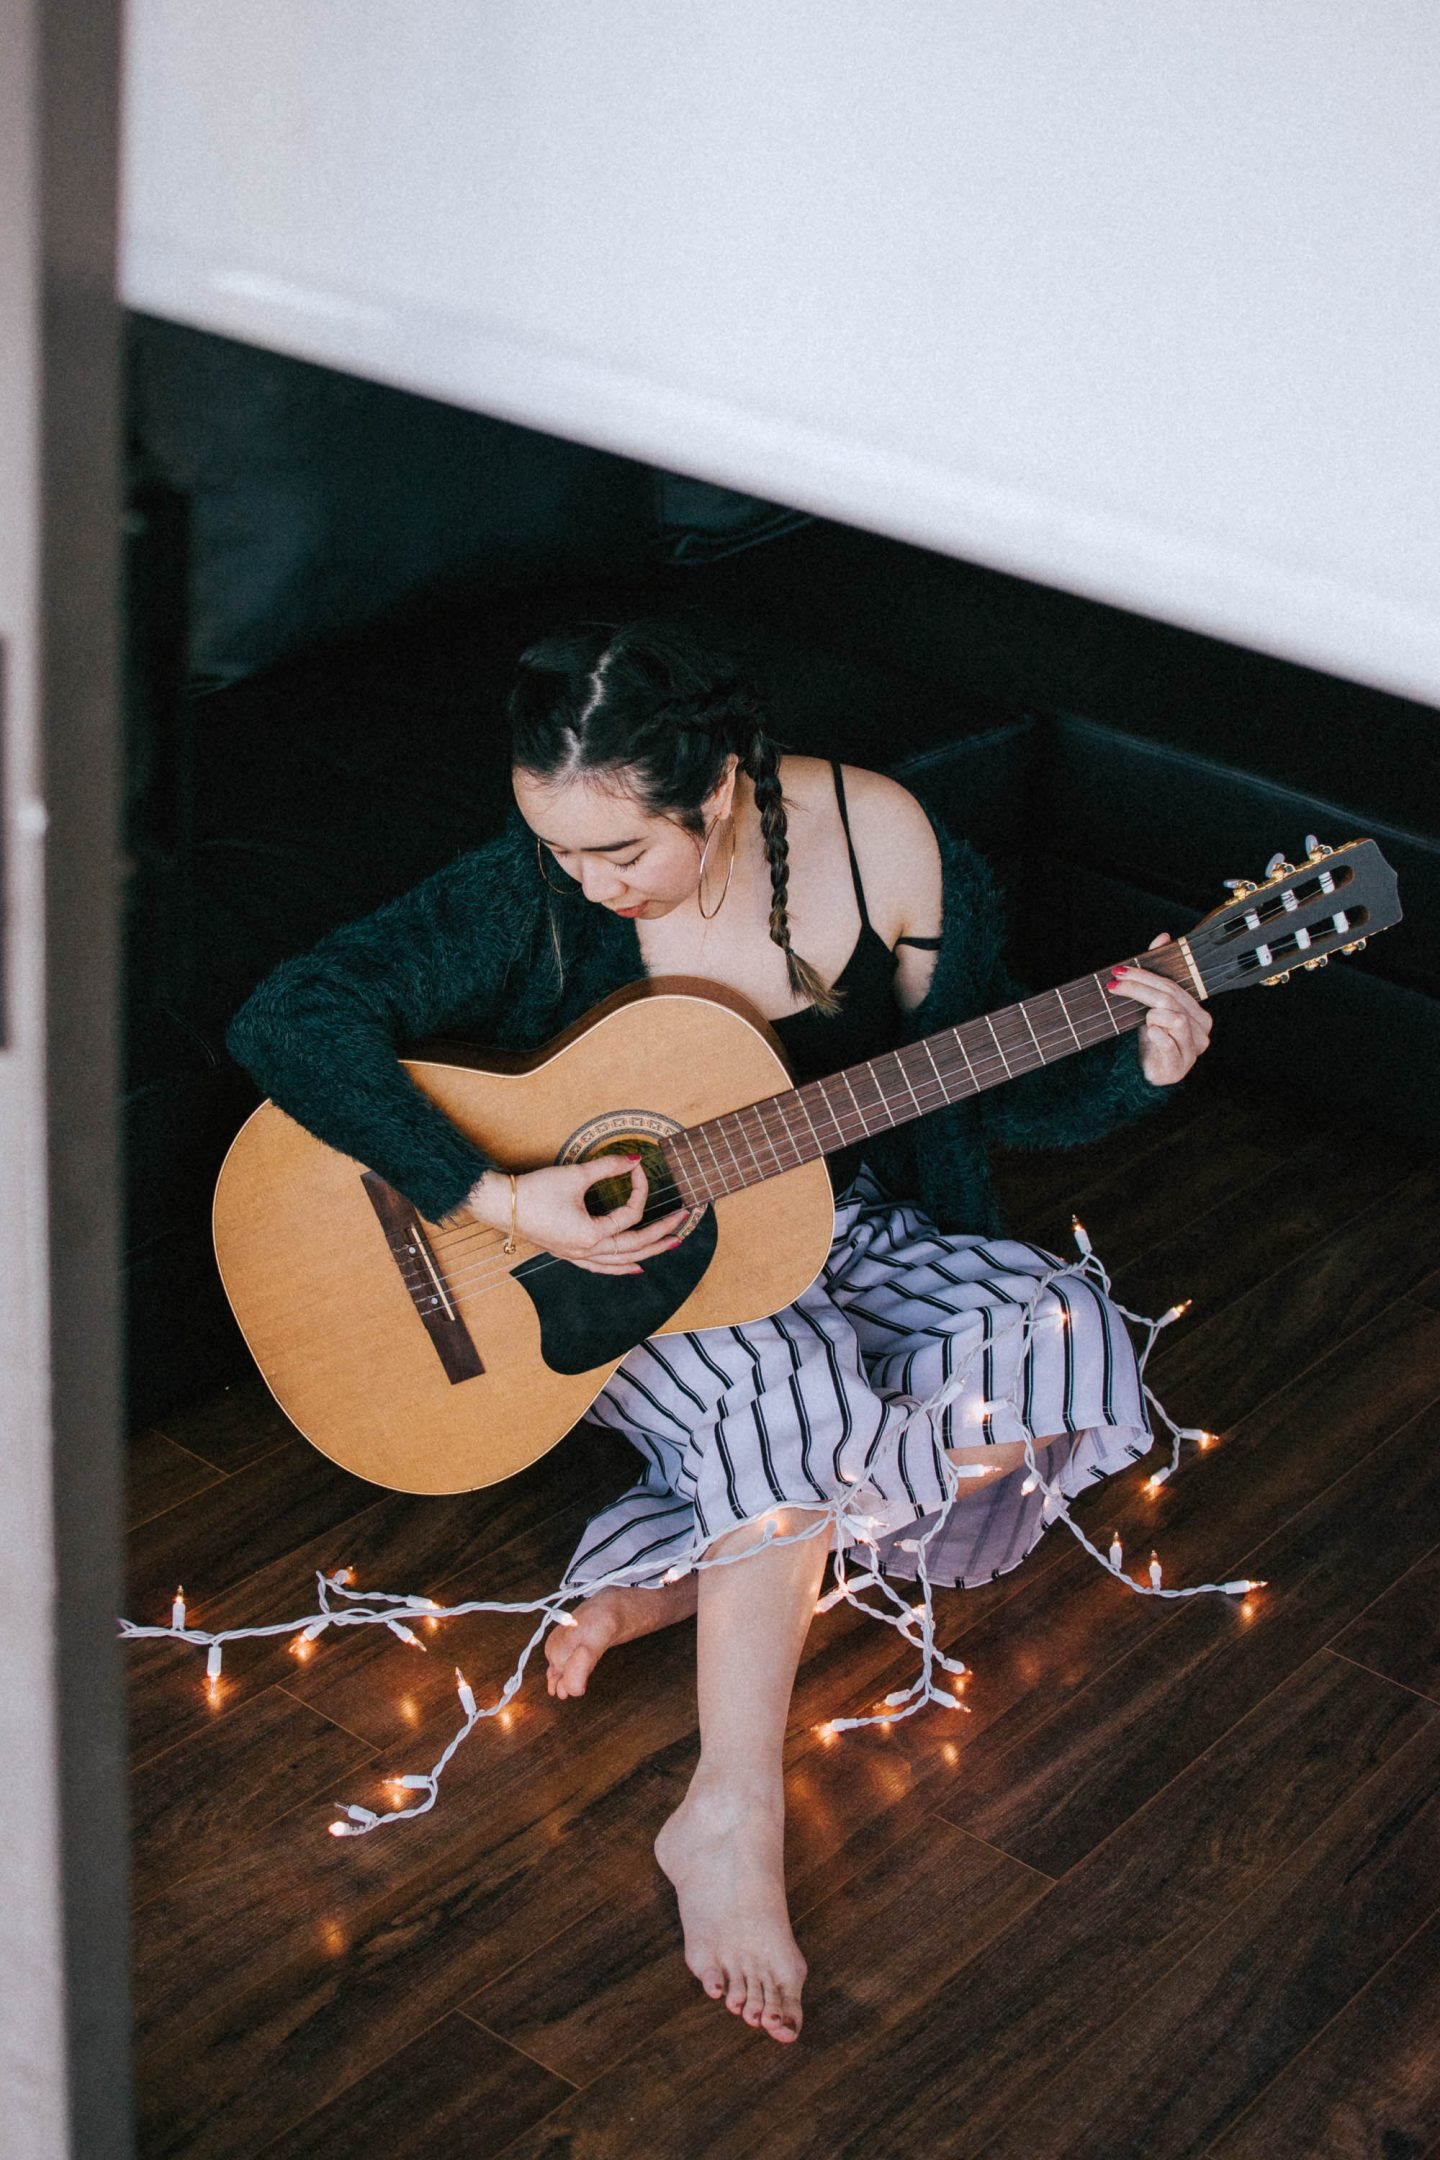 Playing the guitar and making music is one of the ways I practice positivity and self care